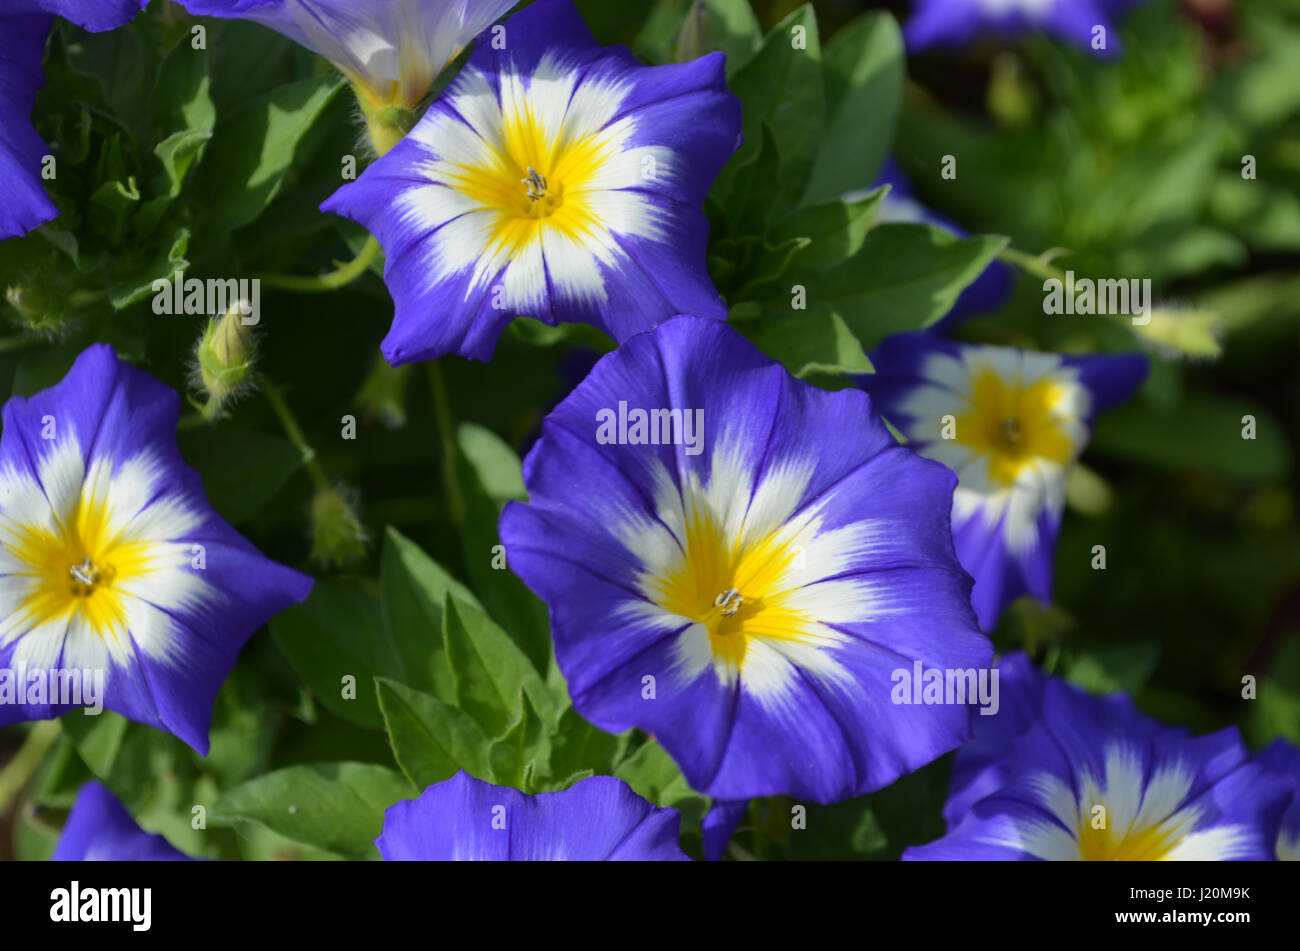 Pretty blue and yellow morning glories in a garden. - Stock Image